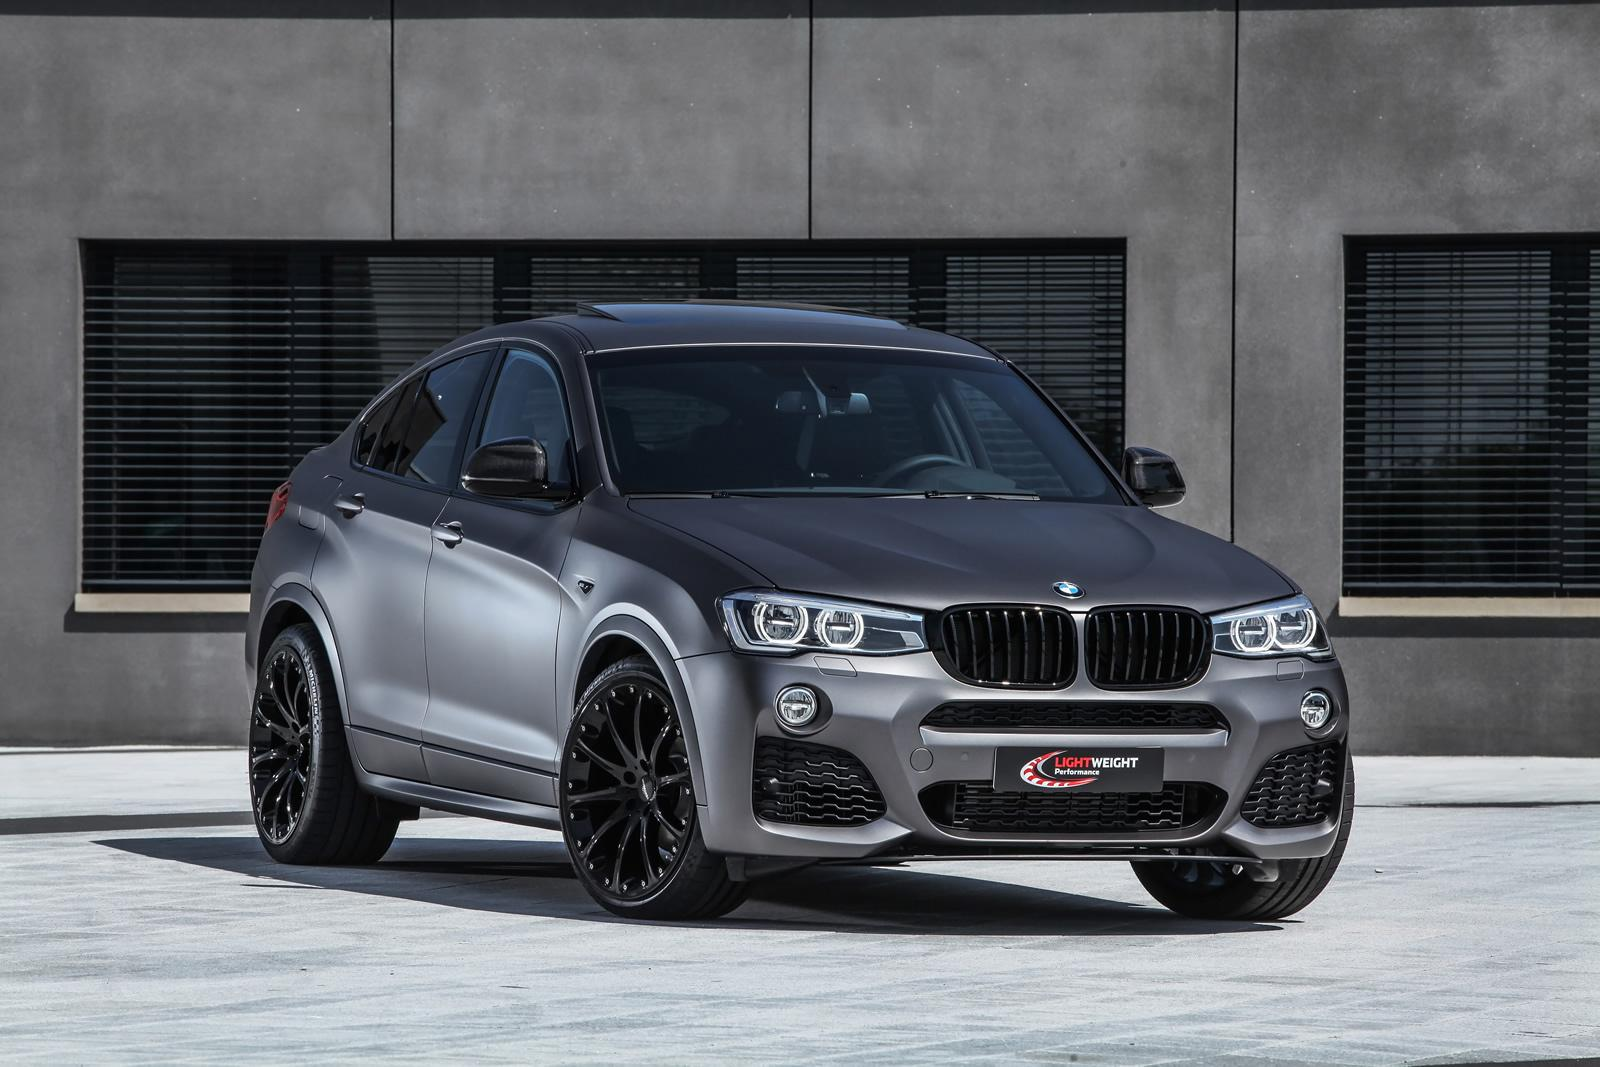 tuning firm 39 lightweight 39 reveals upgraded bmw x4 gtspirit. Black Bedroom Furniture Sets. Home Design Ideas